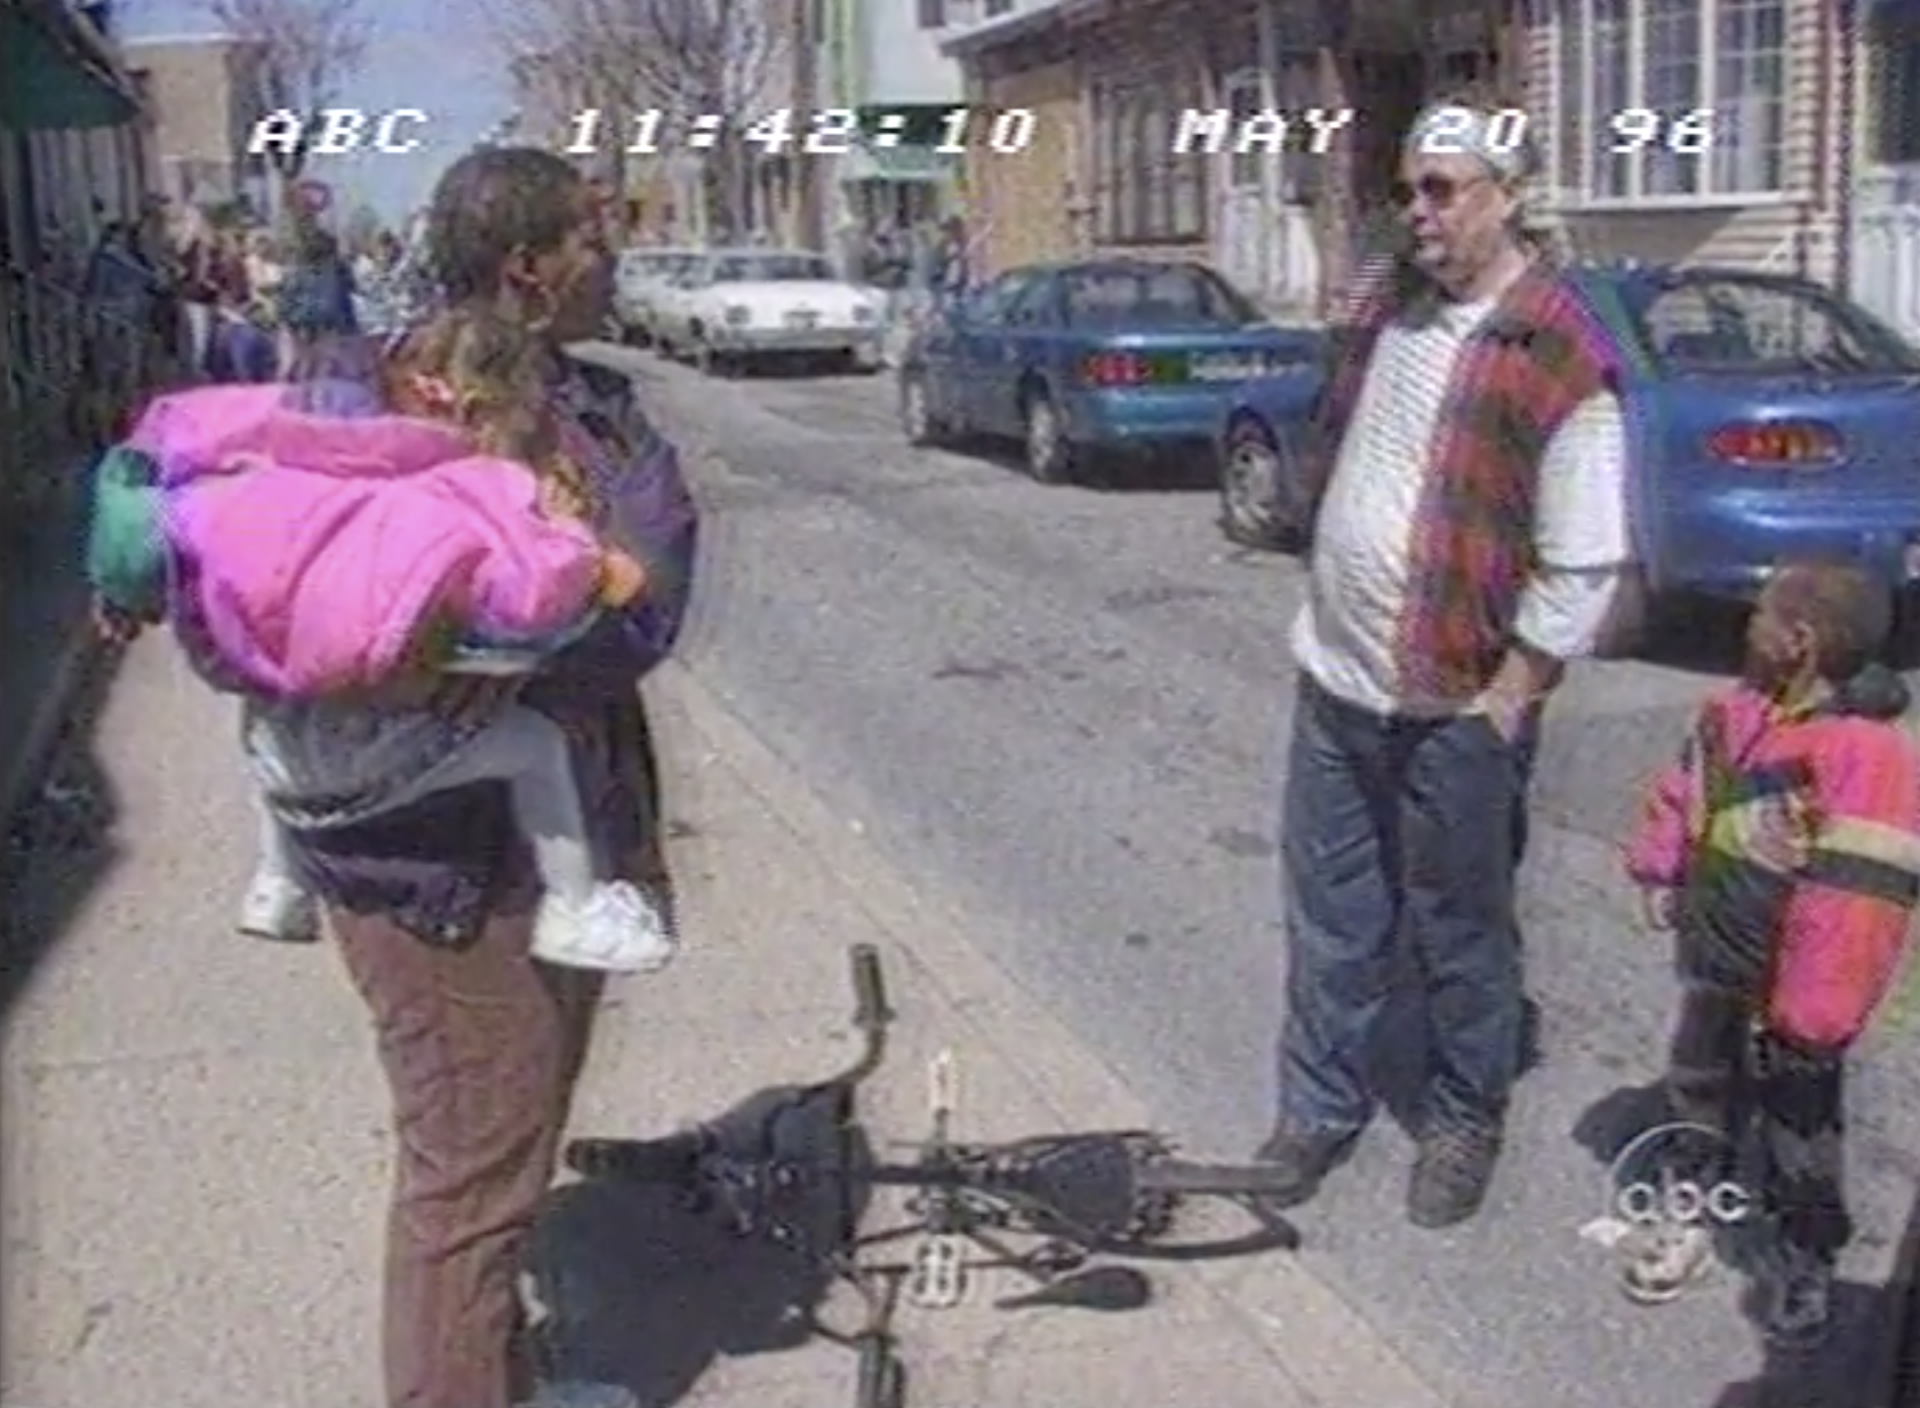 Bridesburg residents talking in the street amid a media circus during Nightline's 1996 feature.